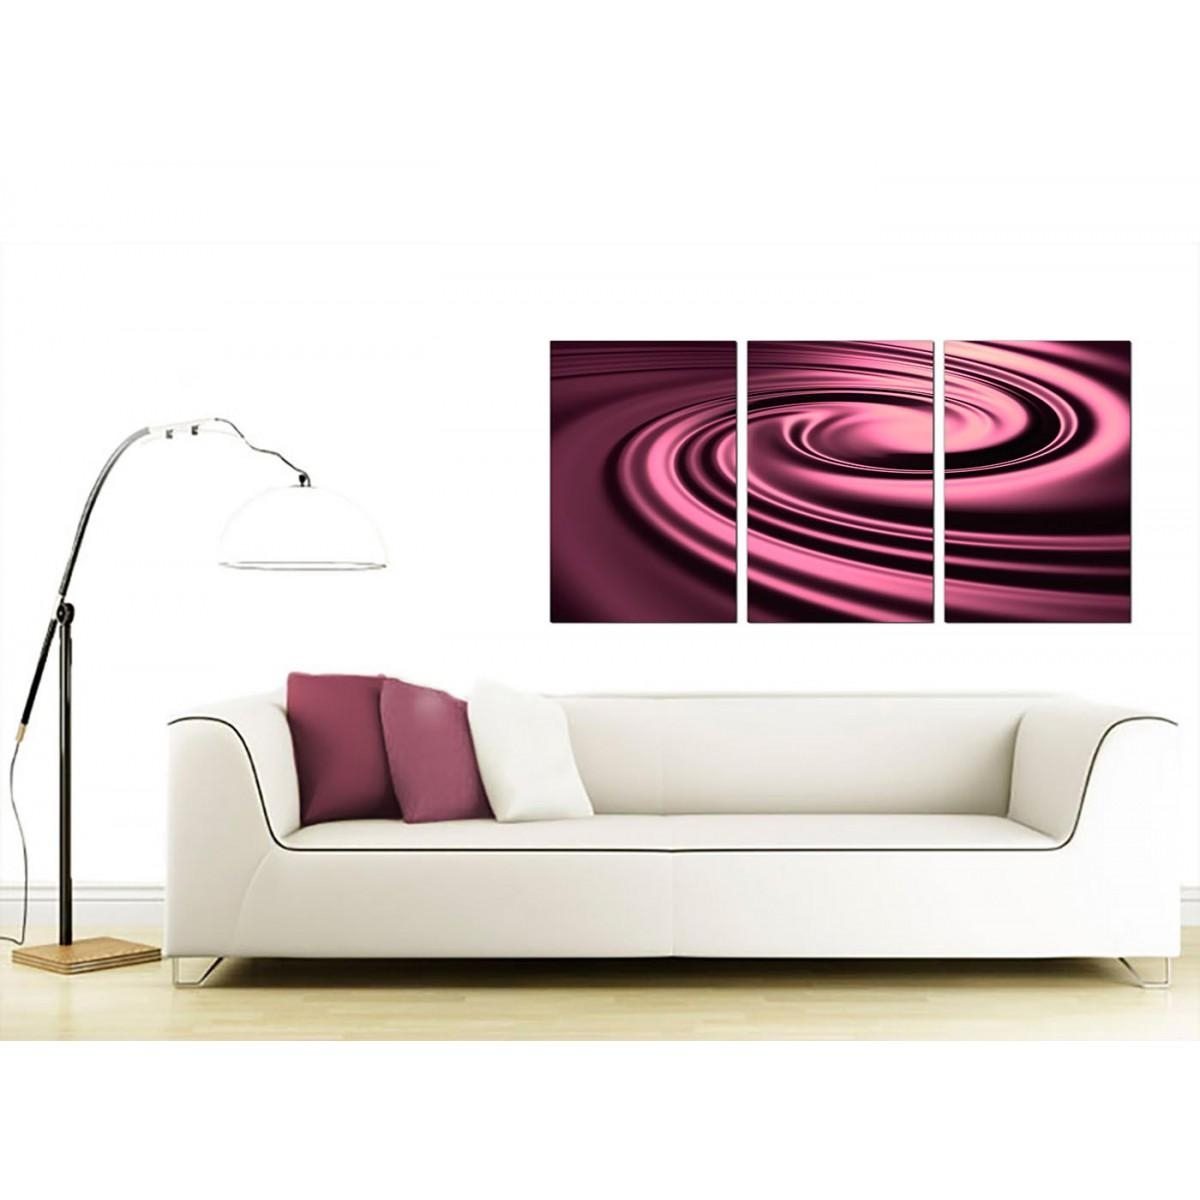 Cheap Abstract Canvas Wall Art 3 Part In Plum With Plum Coloured Wall Art (Image 3 of 20)